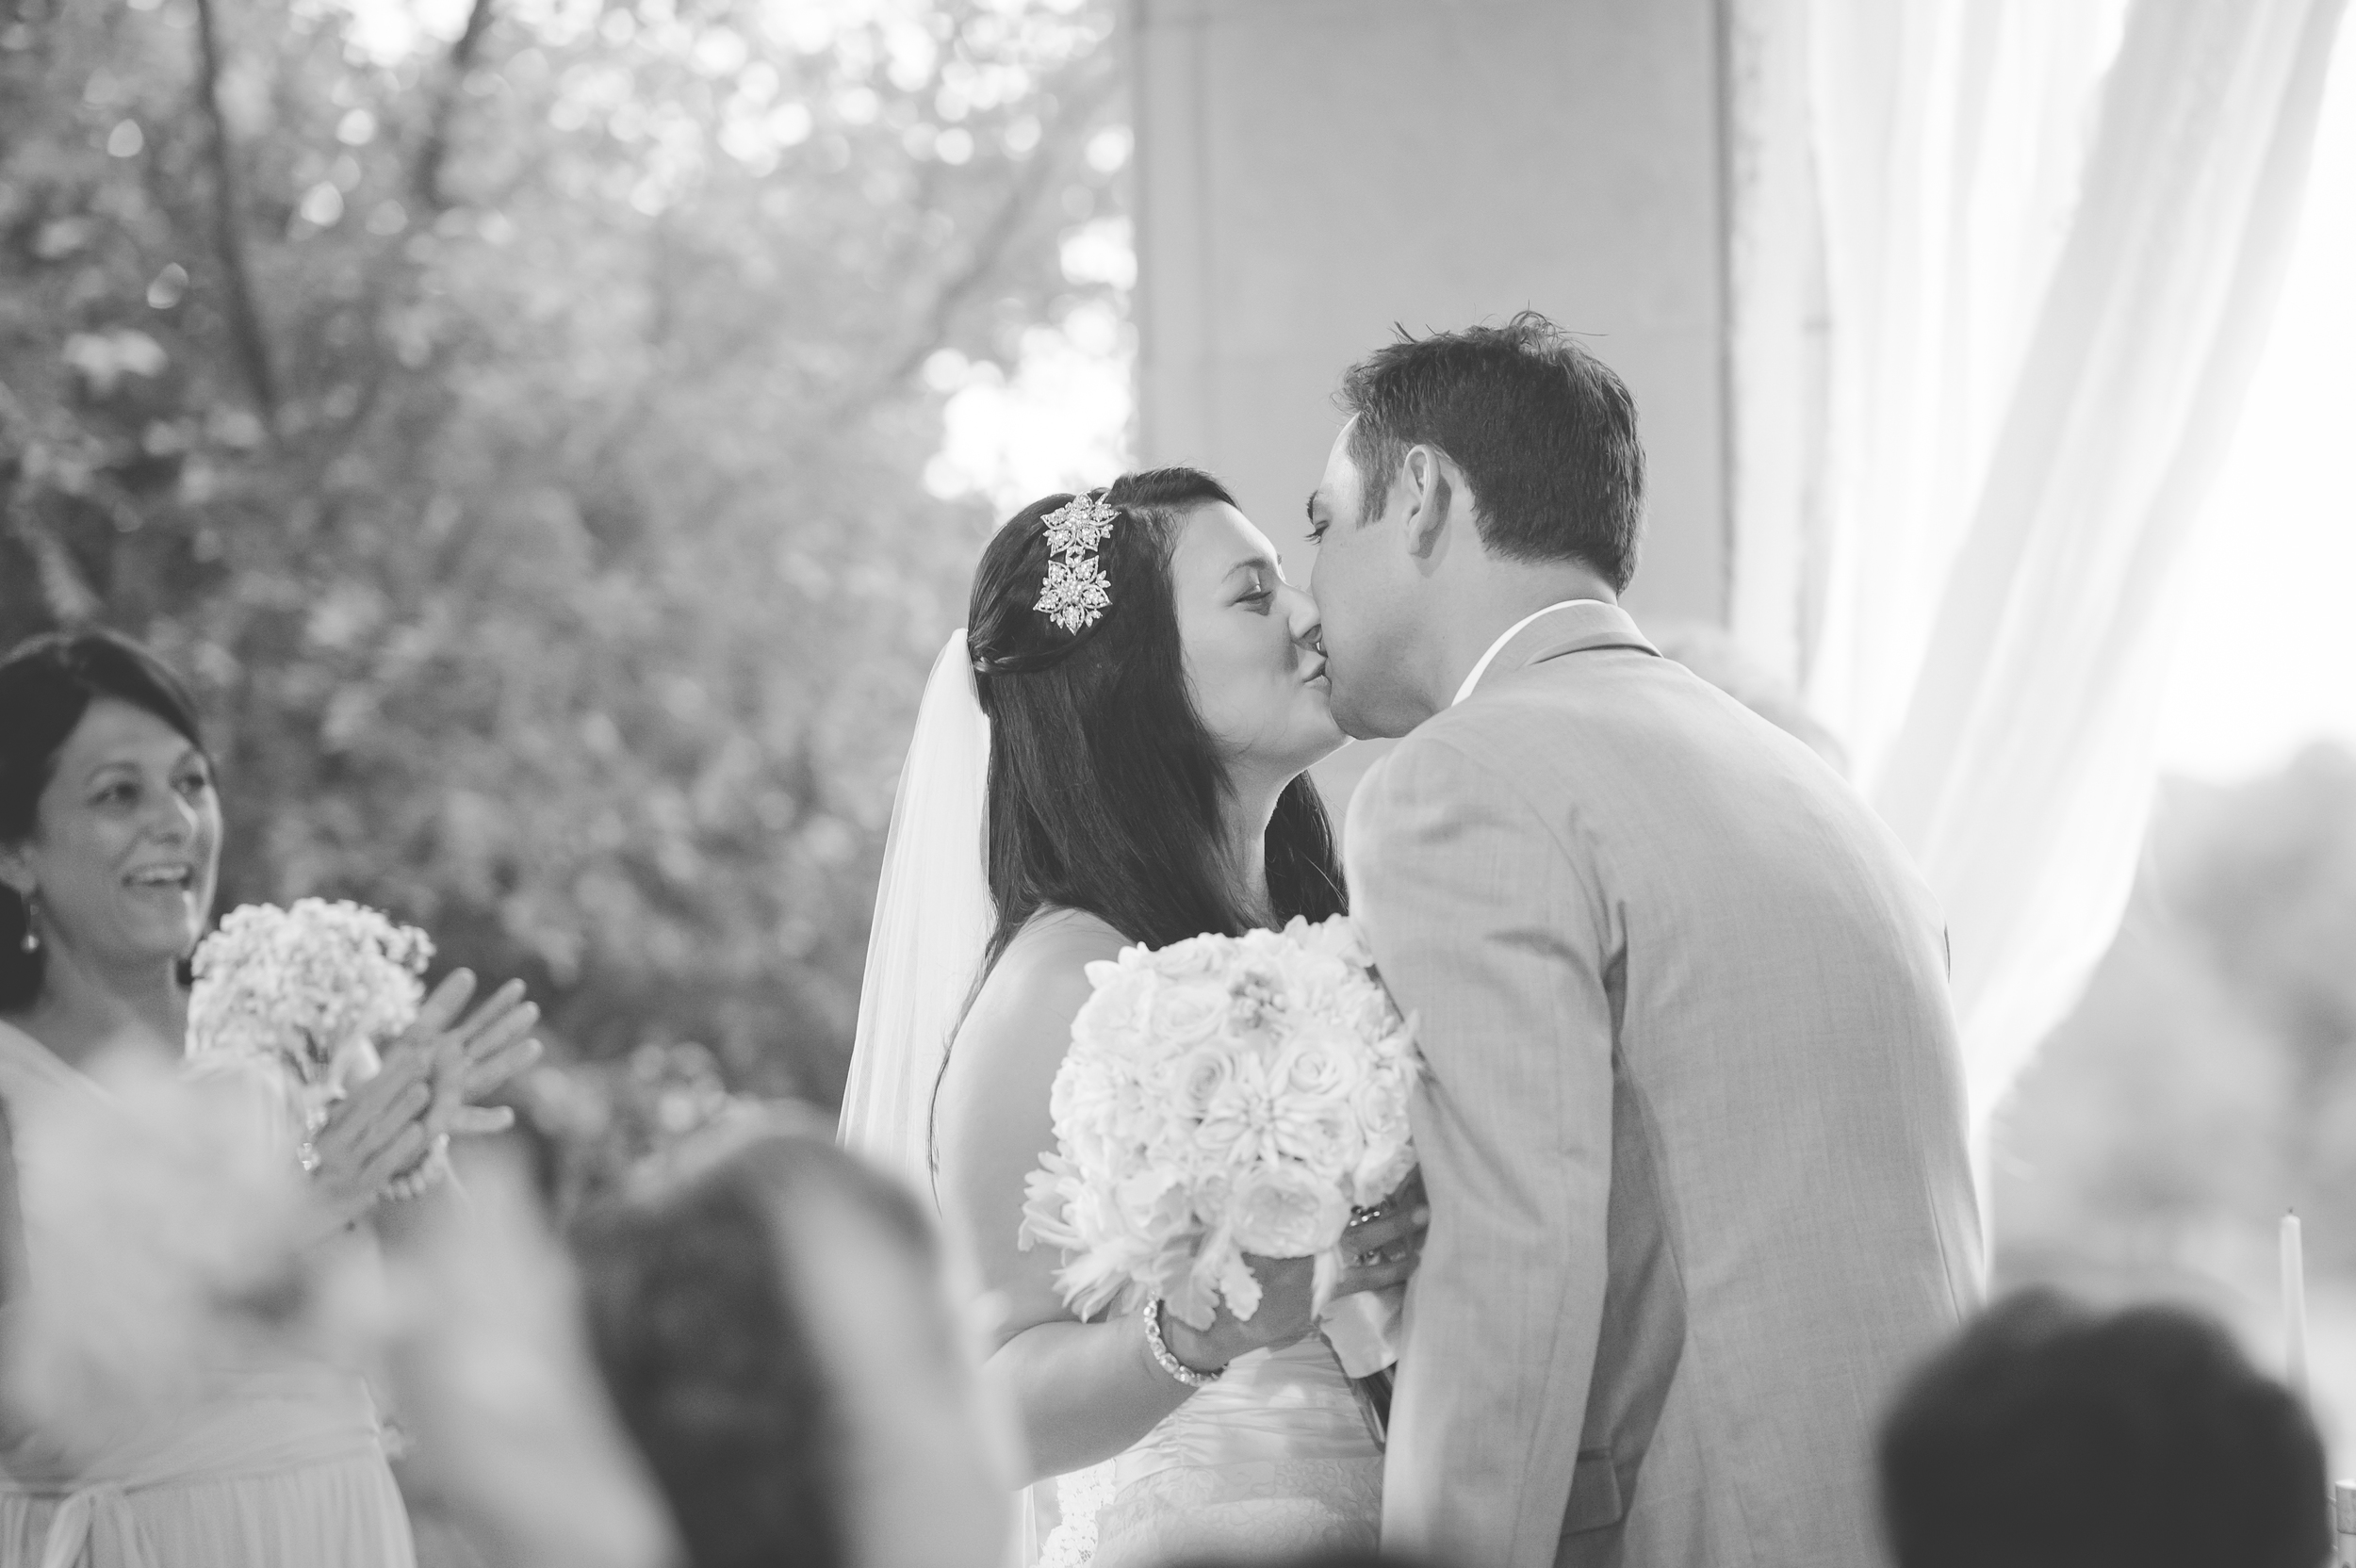 waveny_house_wedding_New_canaan_CT_Amy_Champagne_Events748.jpg